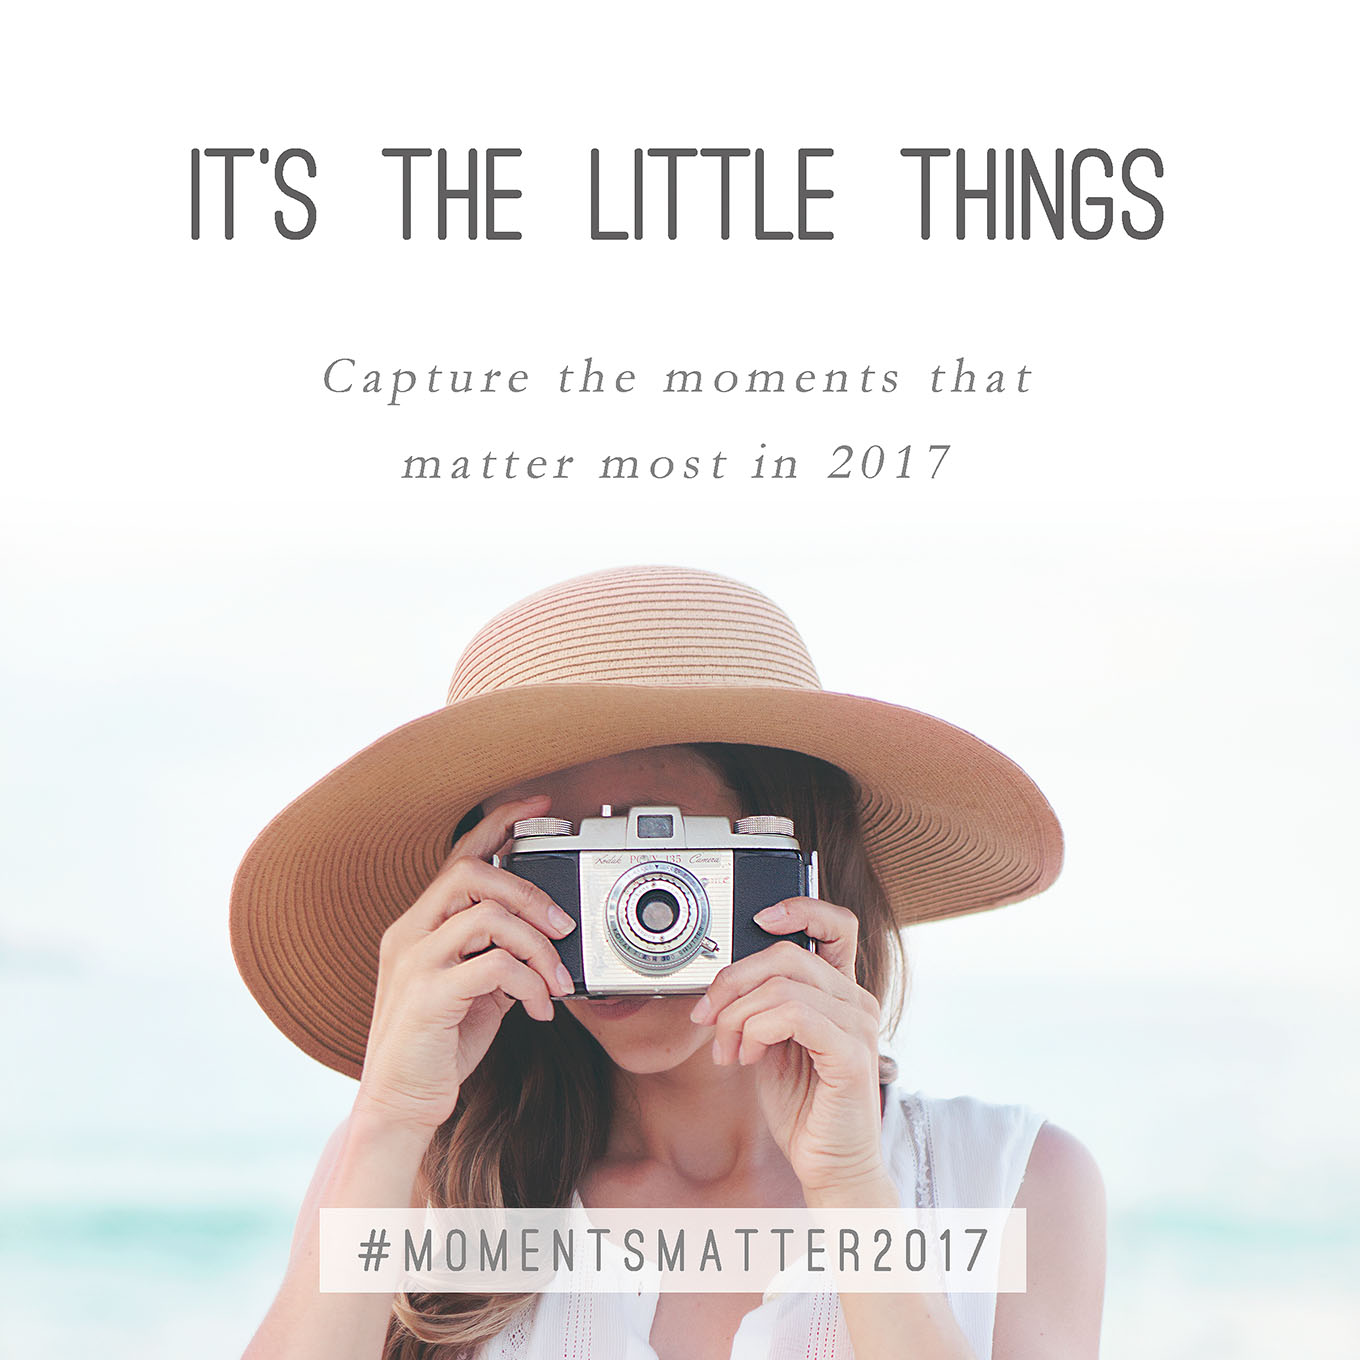 Photography has so much power to connect us to the beauty and joy in our lives that is often too easy to overlook. This year, I invite you to change that by joining in on our new, meaningful photo challenge—starting January 1st.